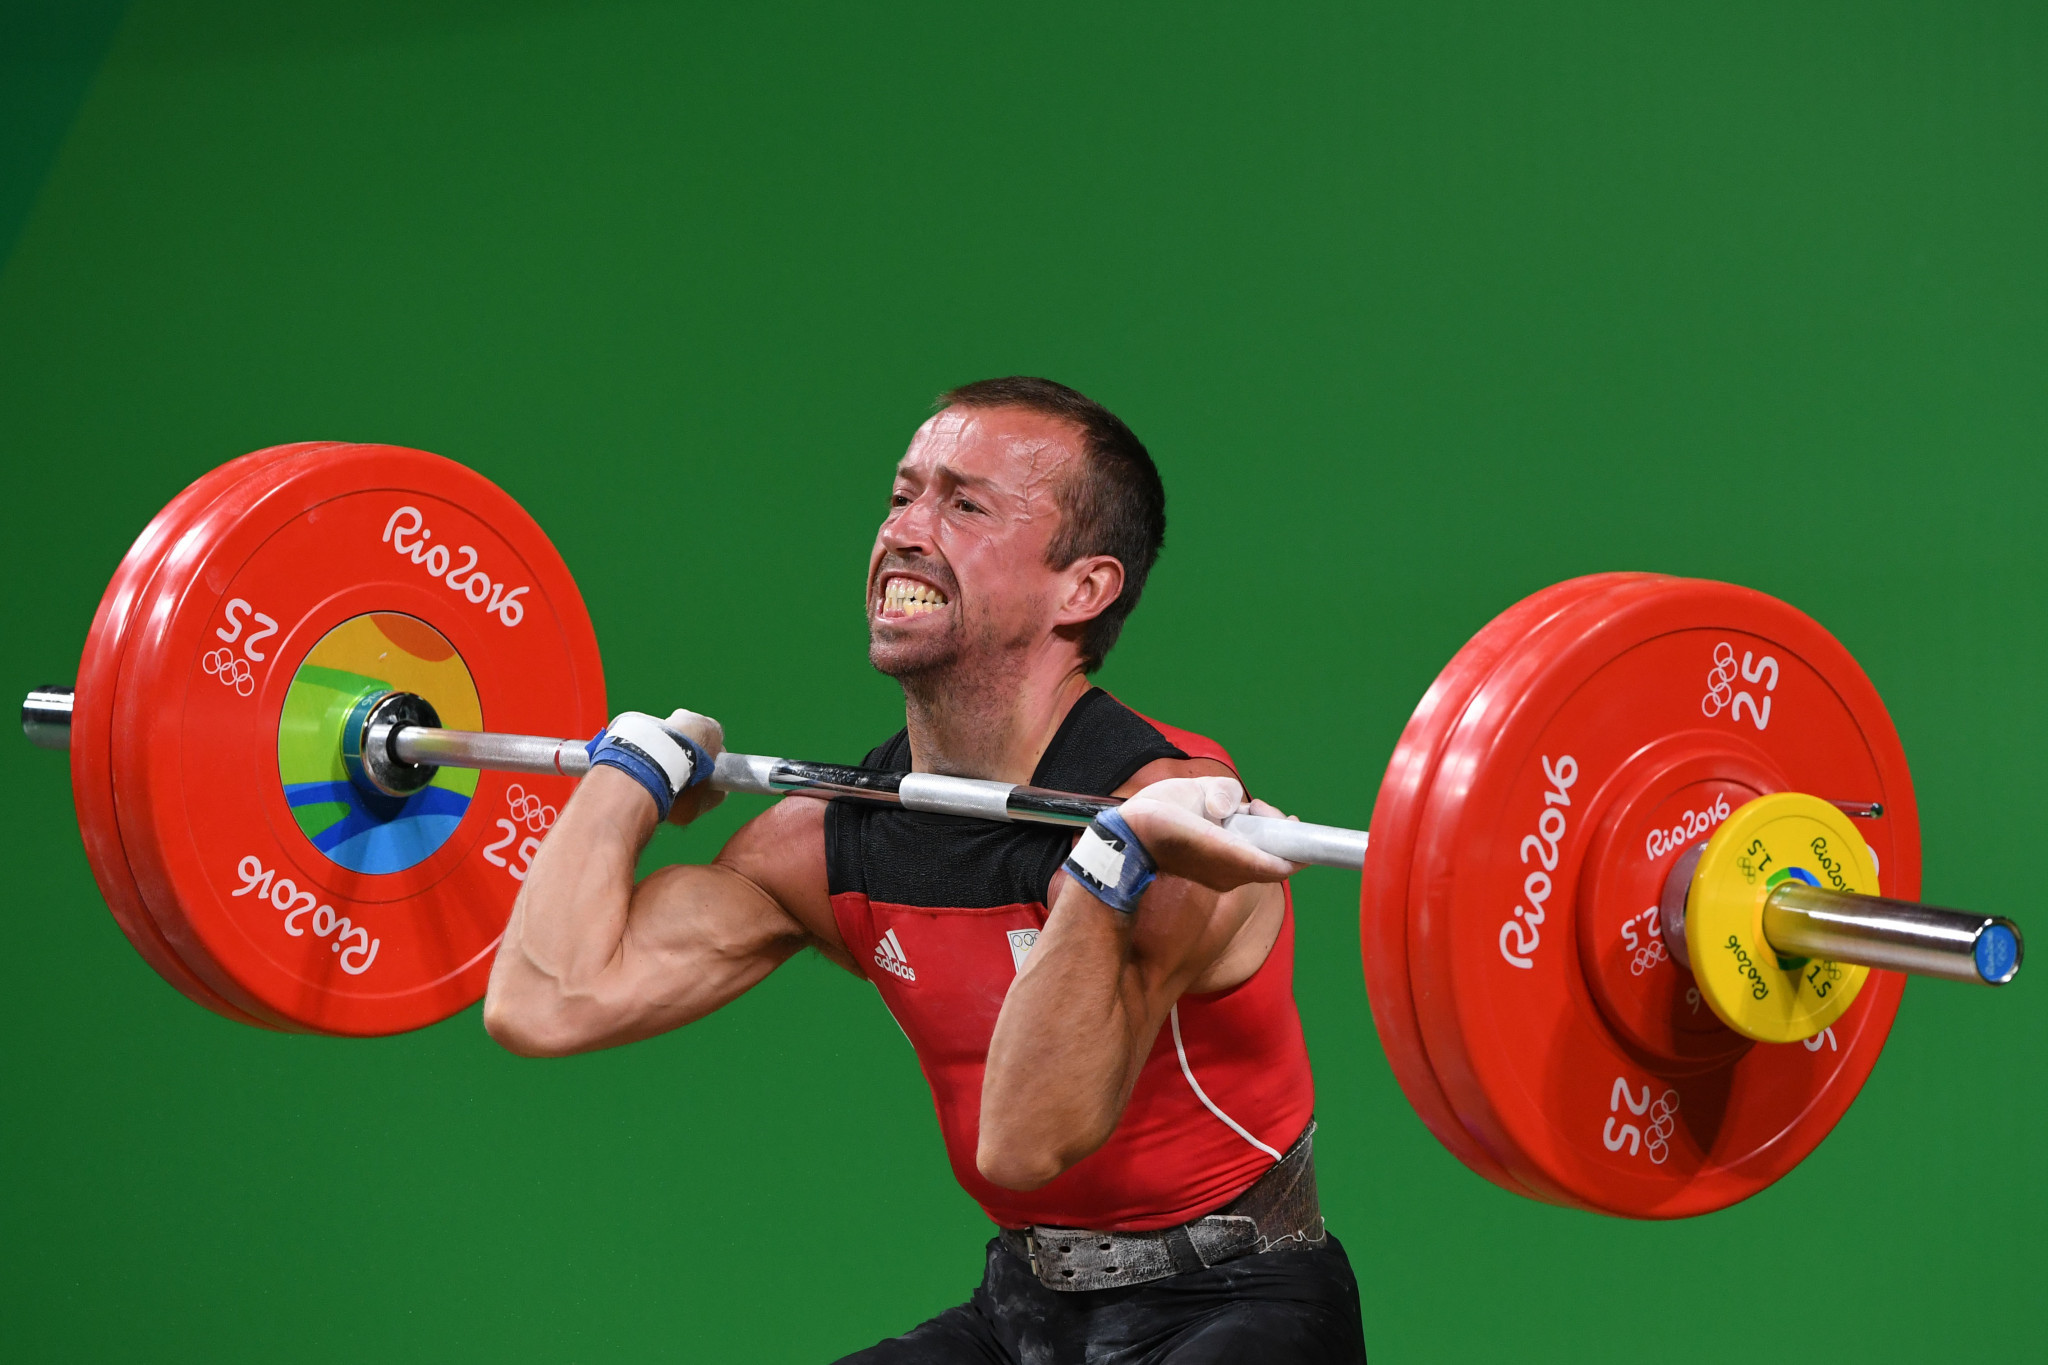 Tom Goegebuer, now President of the Belgian Weightlifting Federation, described athlete representation as